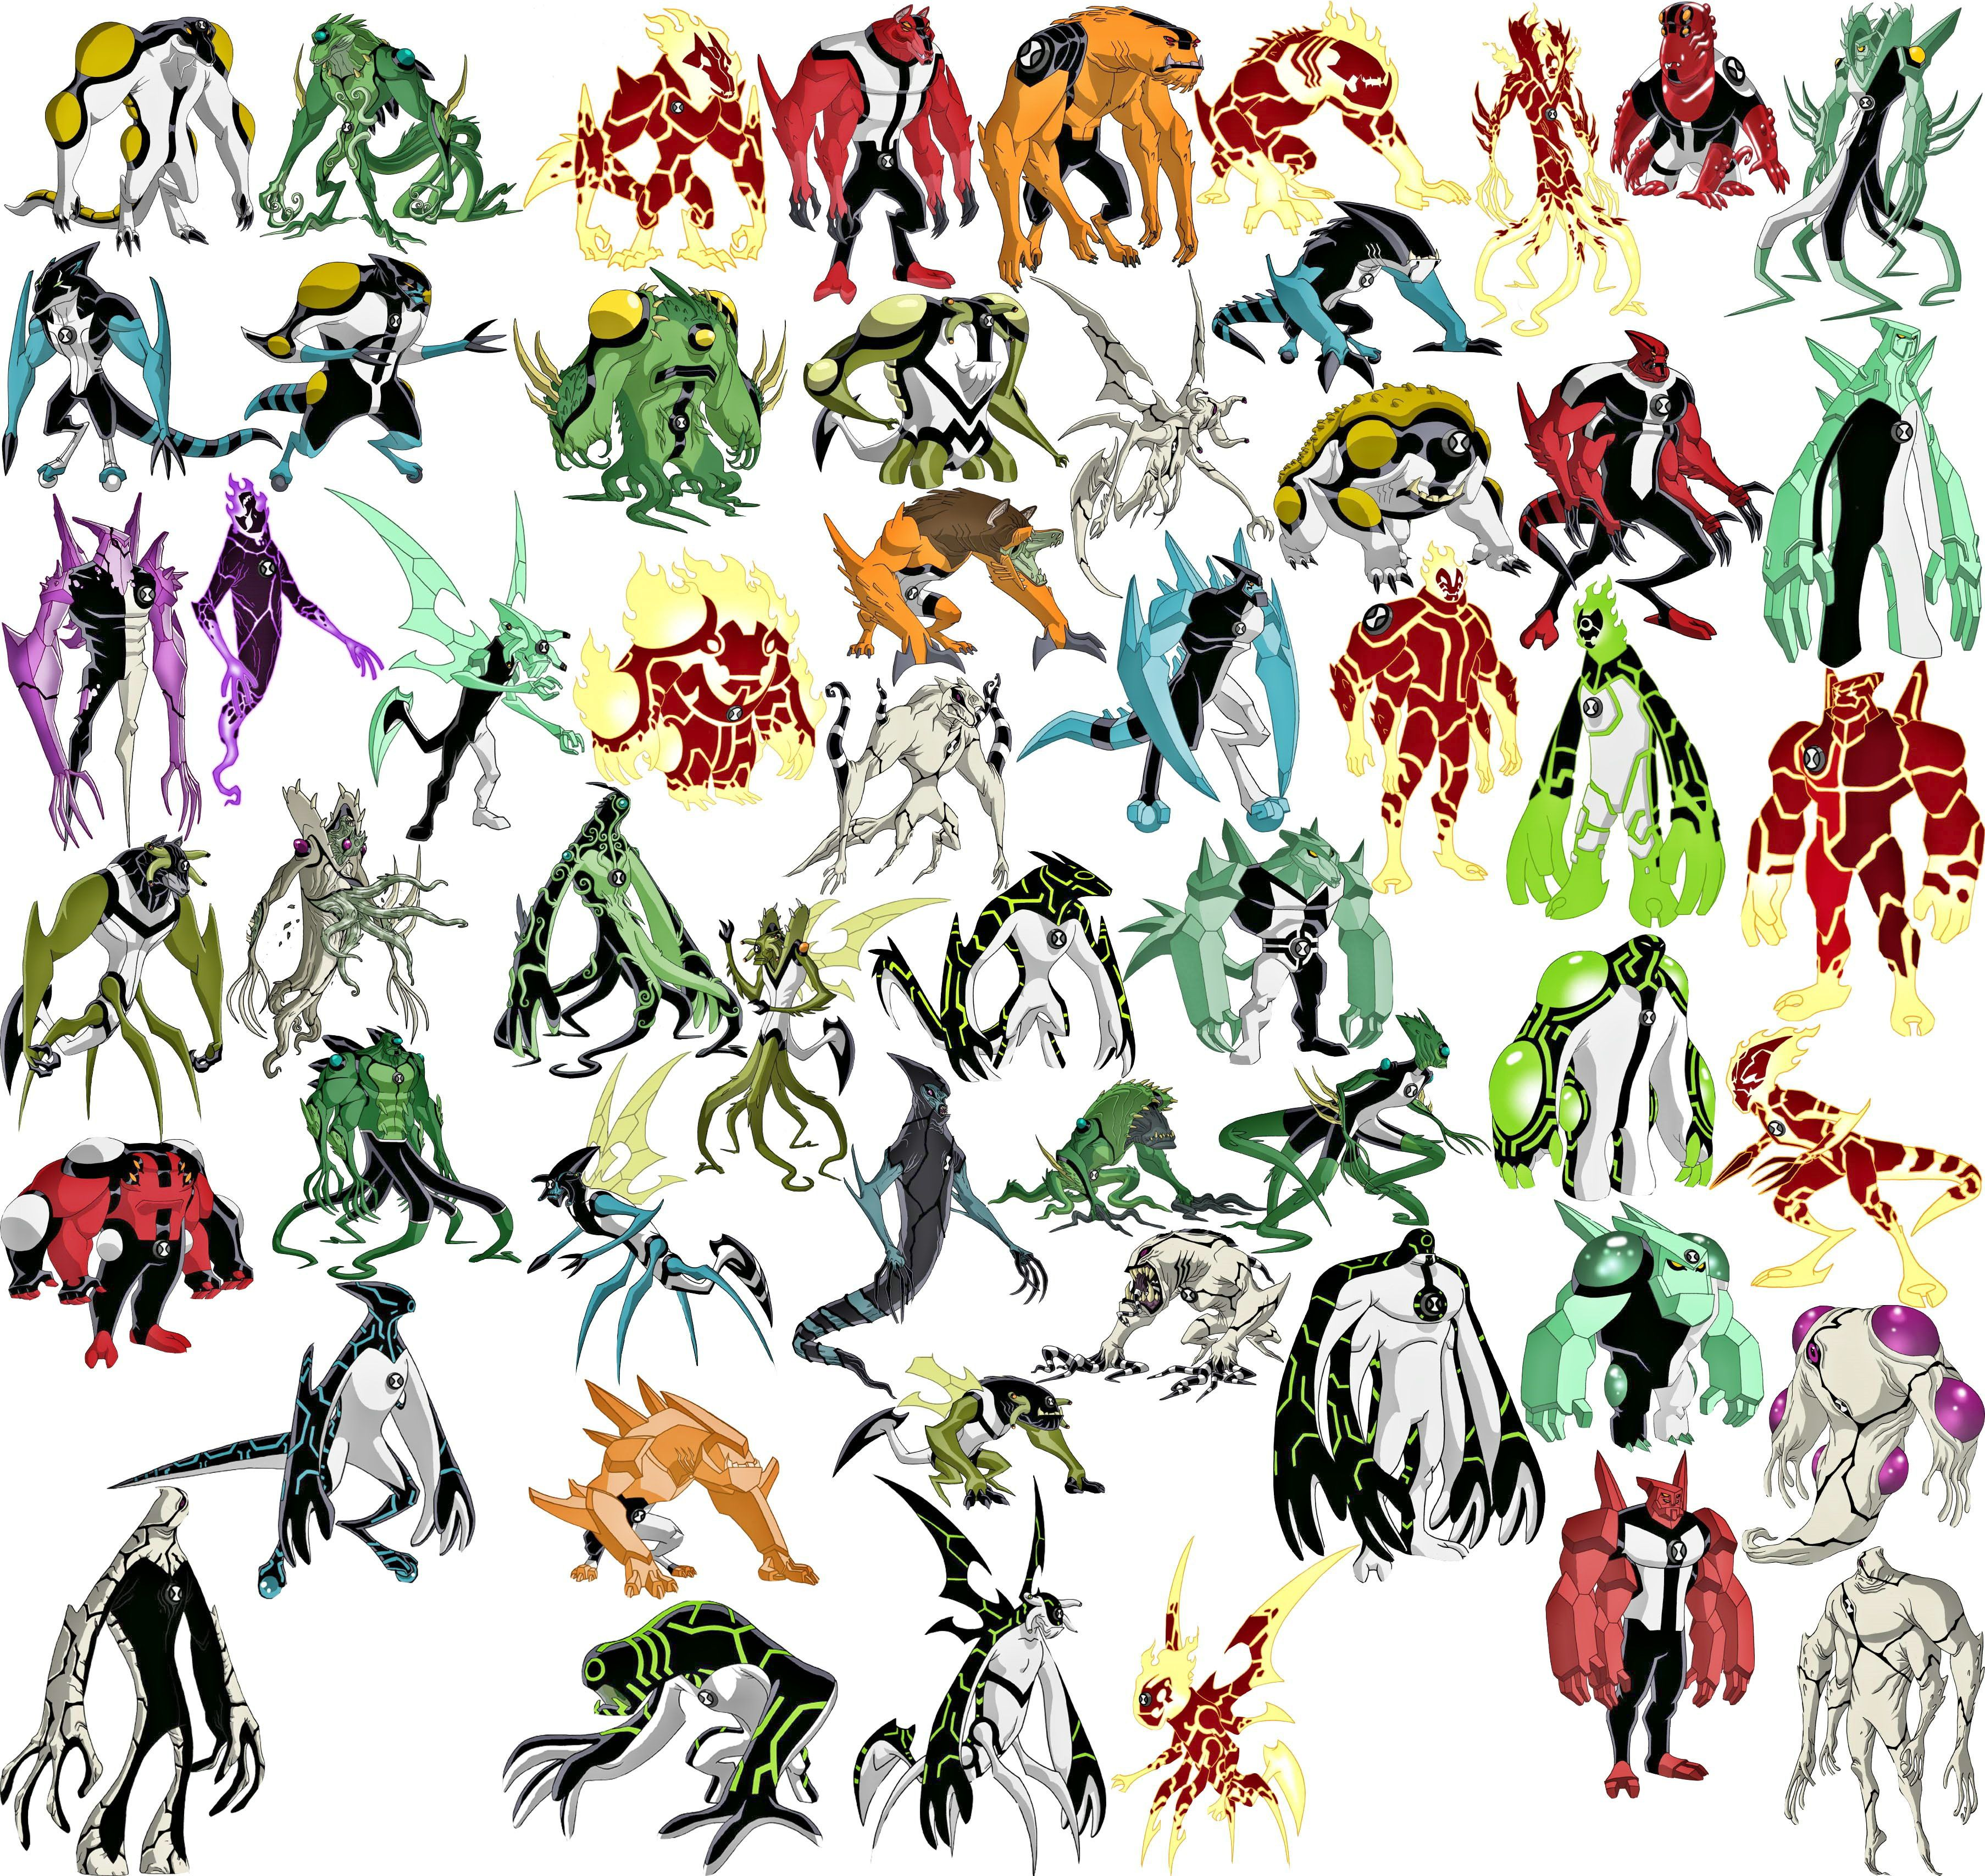 Ben 10 Omniverse Villains List Pictures To Pin On Pinterest